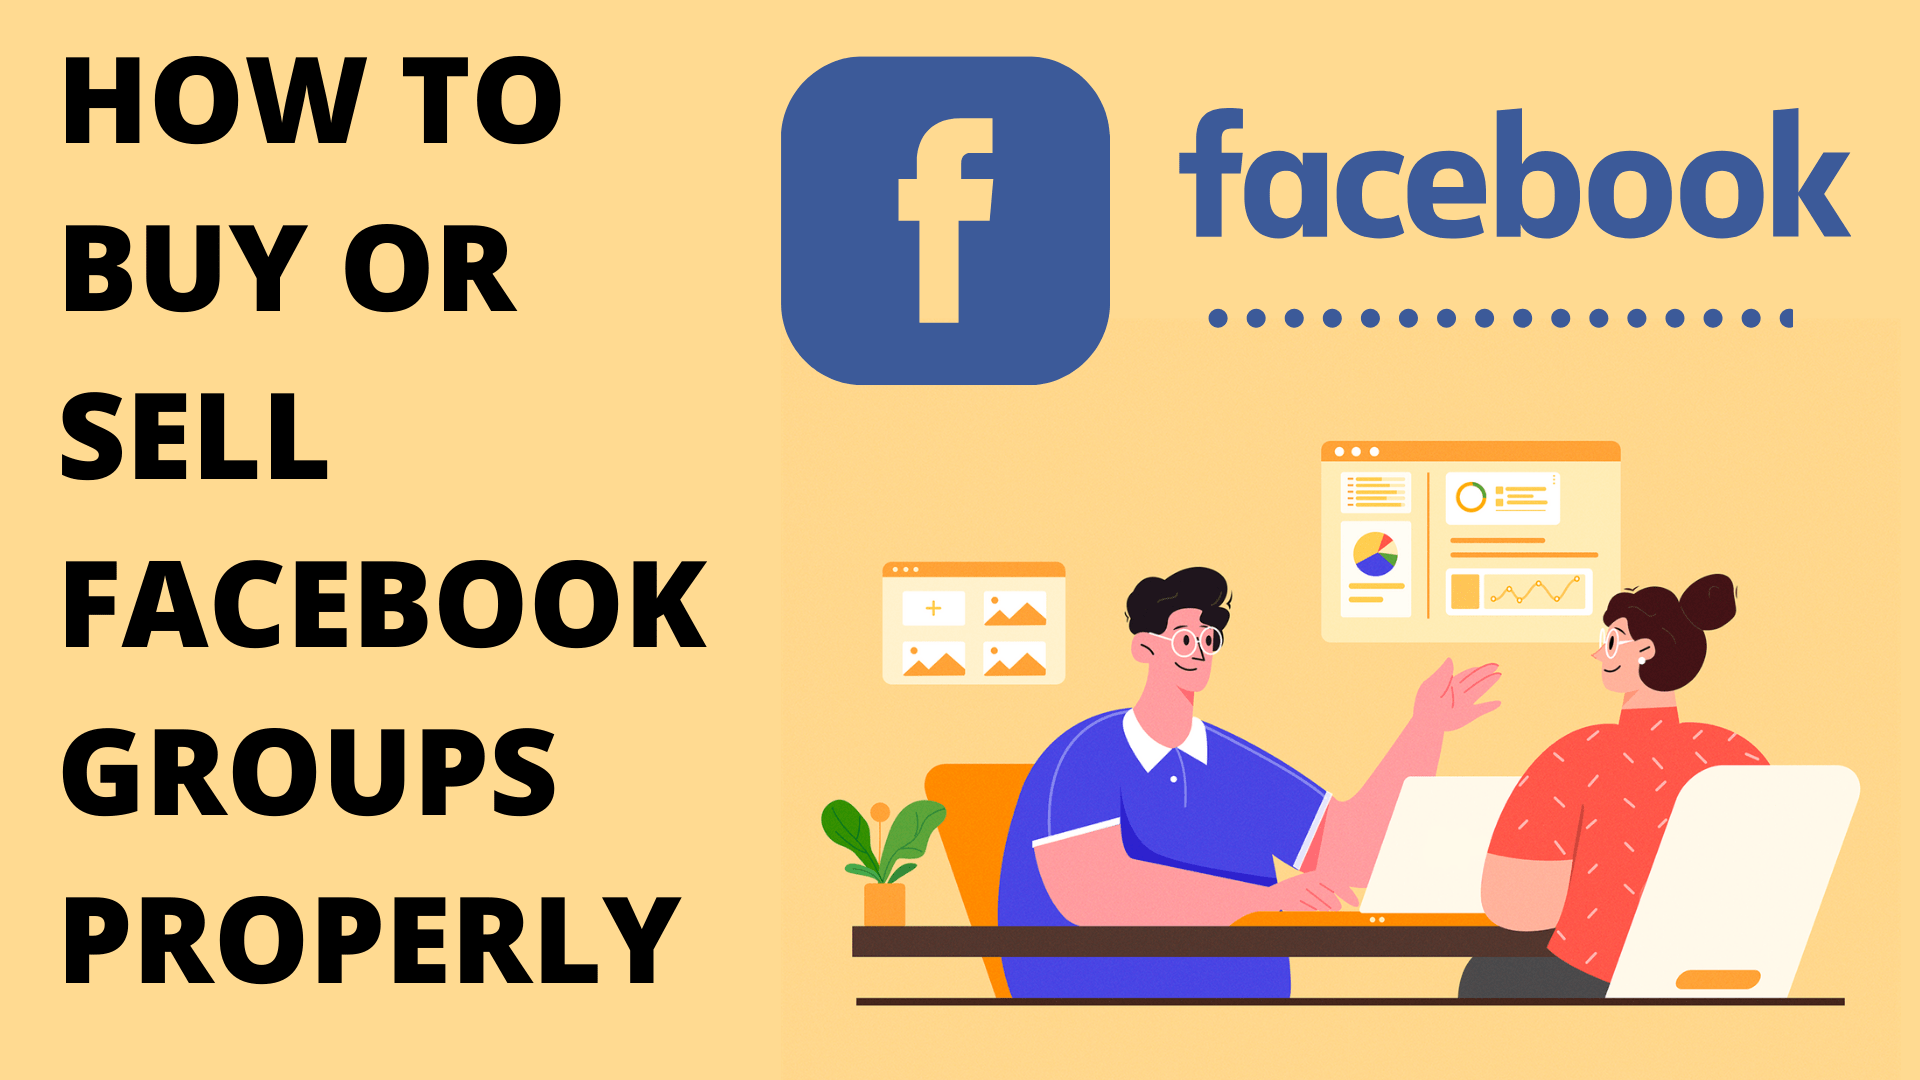 Buy or sell Facebook groups